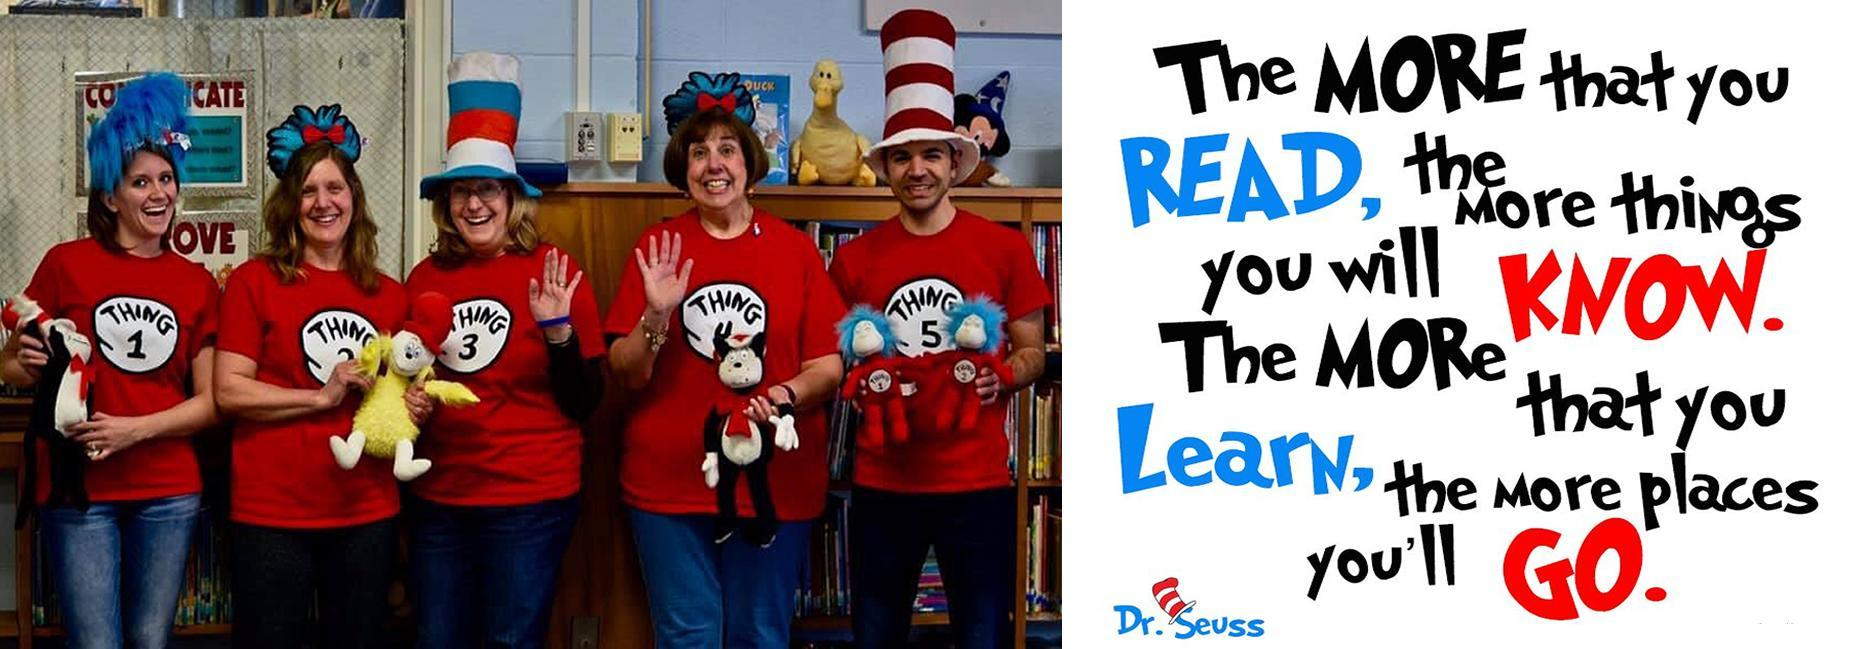 Hatch and Dr. Seuss!